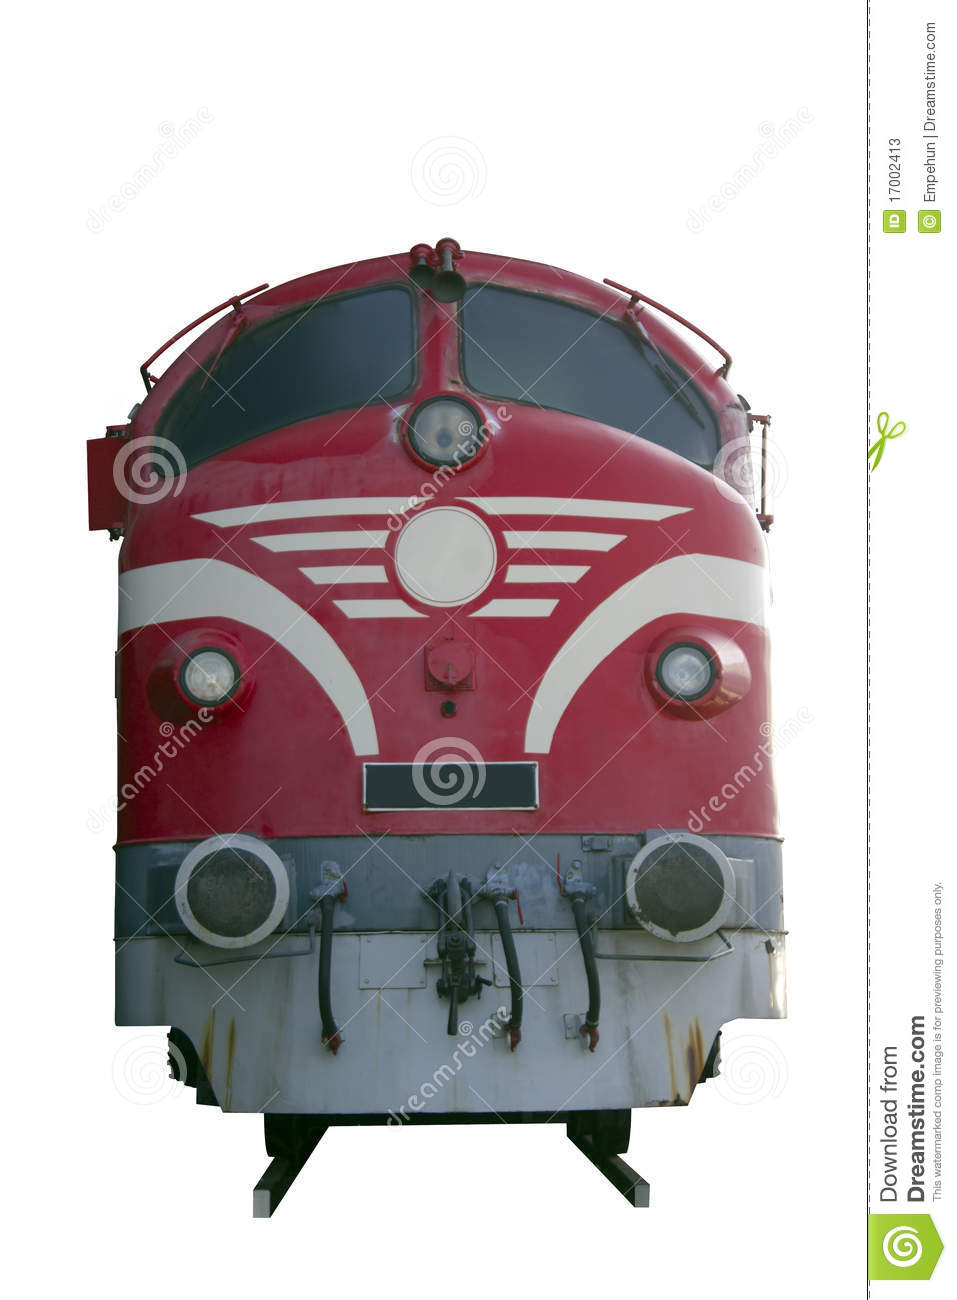 Diesel train engine stock image. Image of power, railway ...